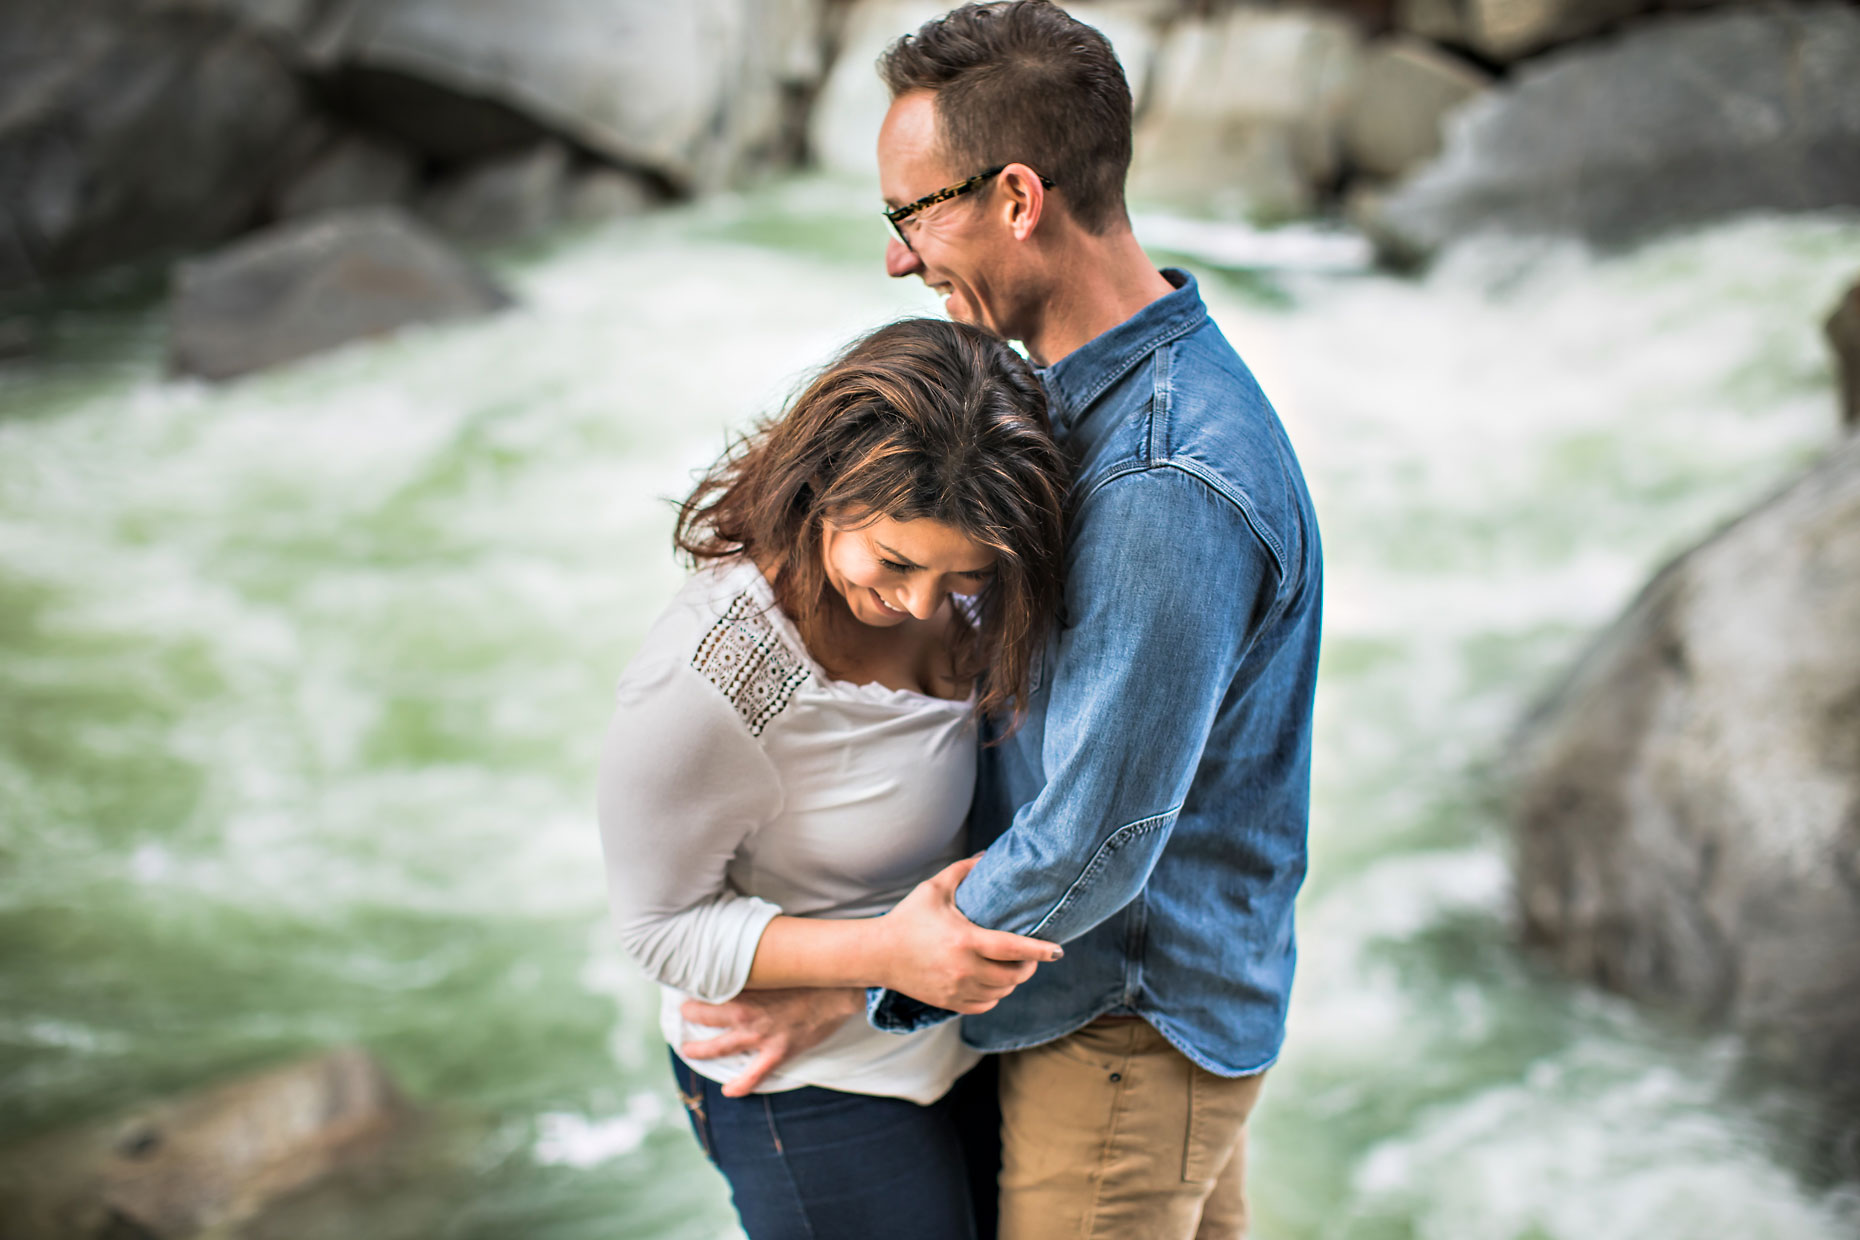 Yuba river adventure session couple photographer in Nevada City.